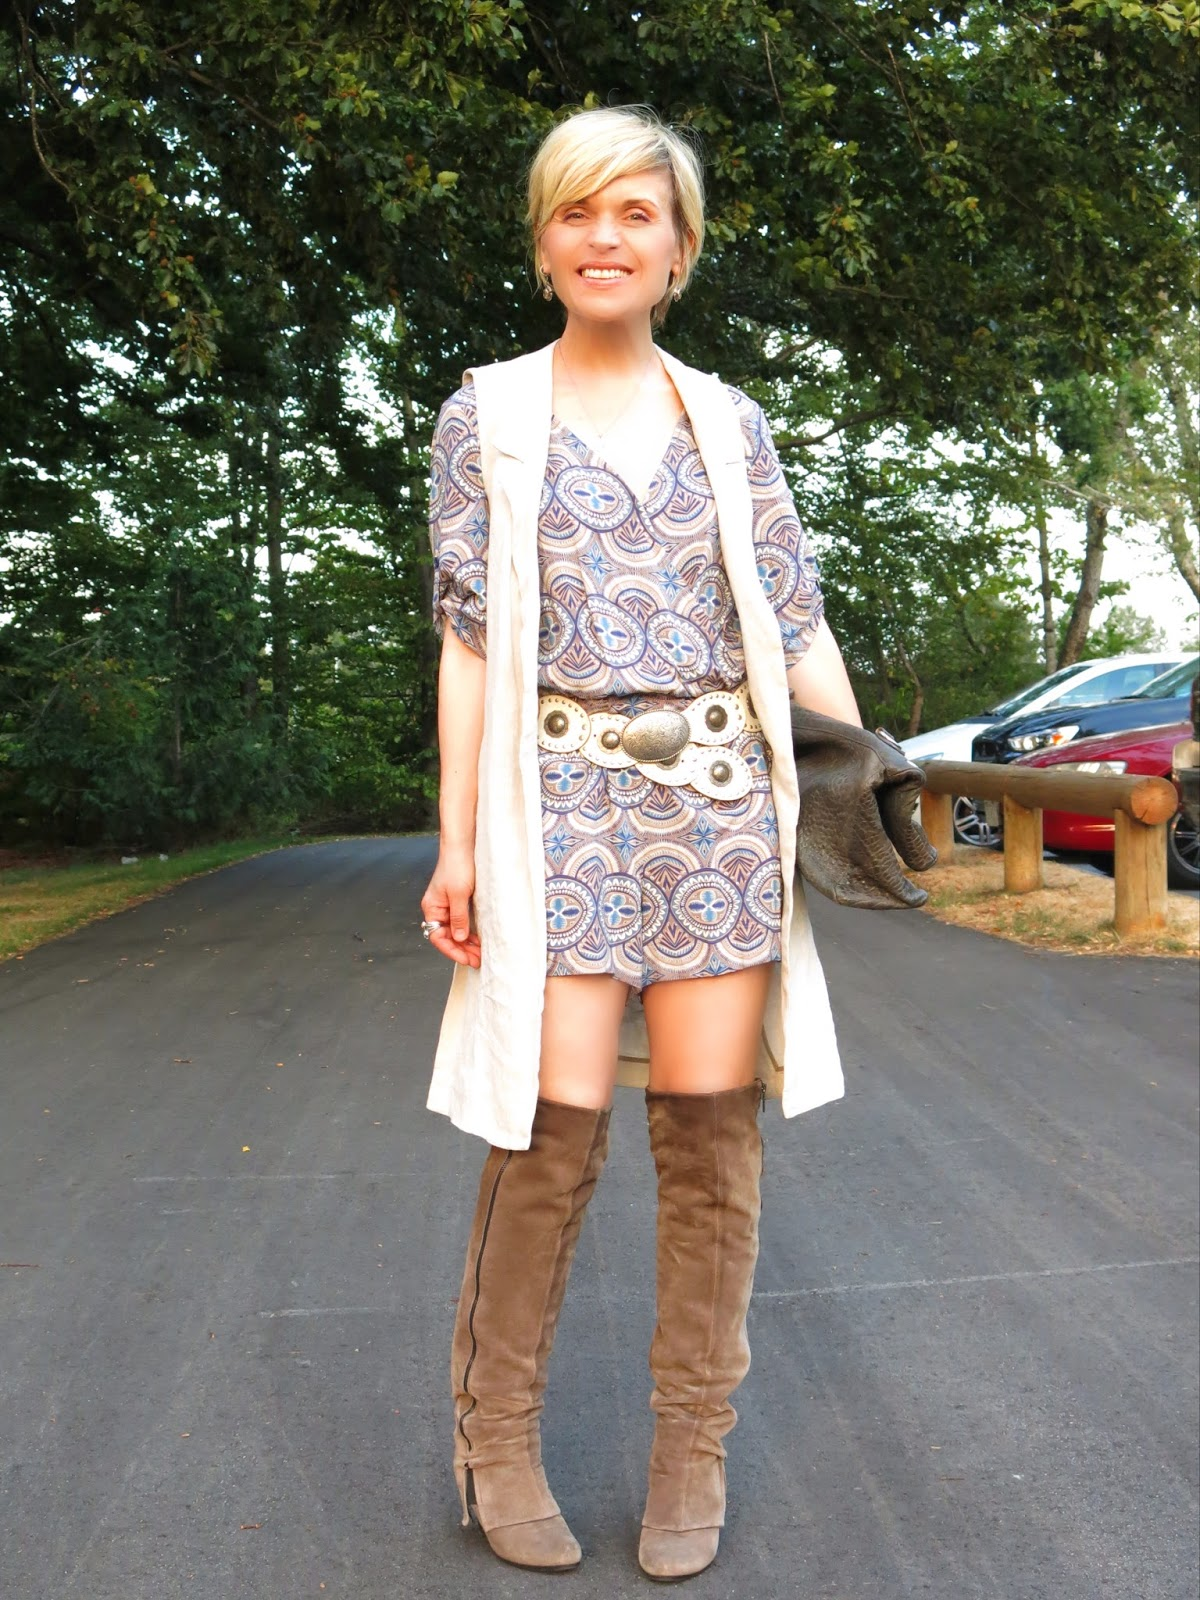 styling a patterned romper with a sleeveless coat, concho belt, and over-knee boots